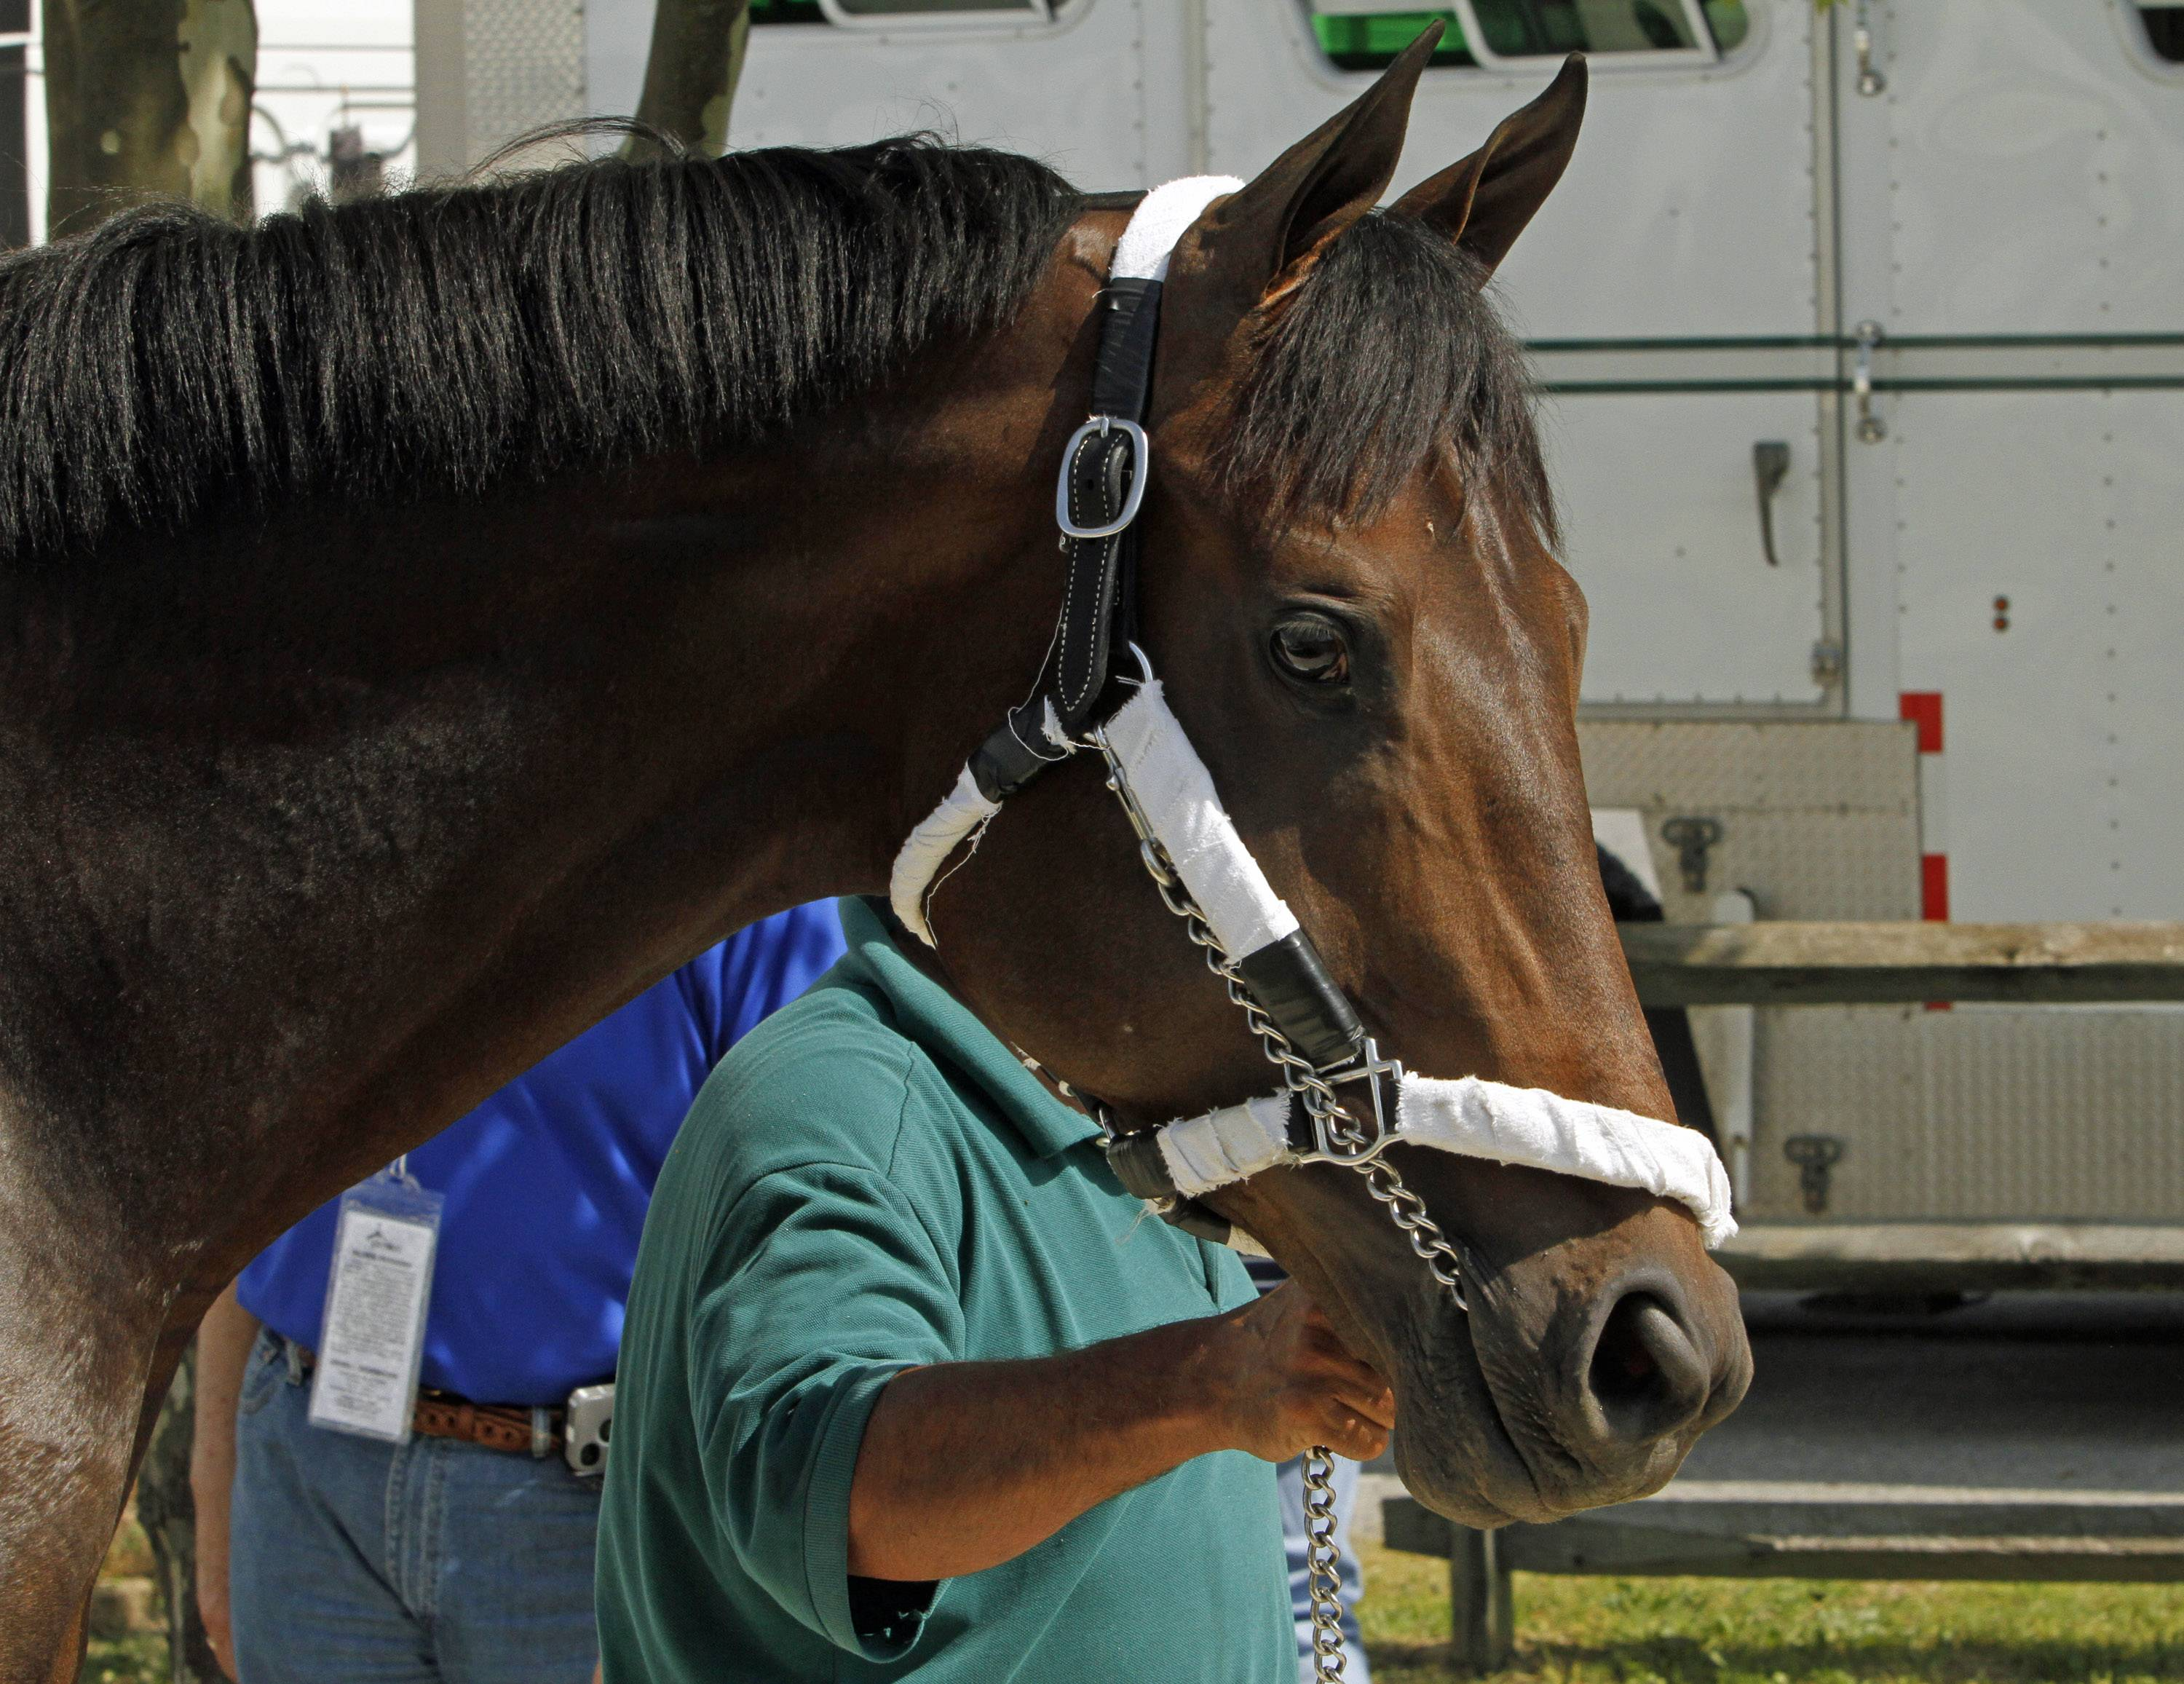 Preakness Stakes hopeful General a Rod finished 11th in the crowded Kentucky Derby field two weeks ago.